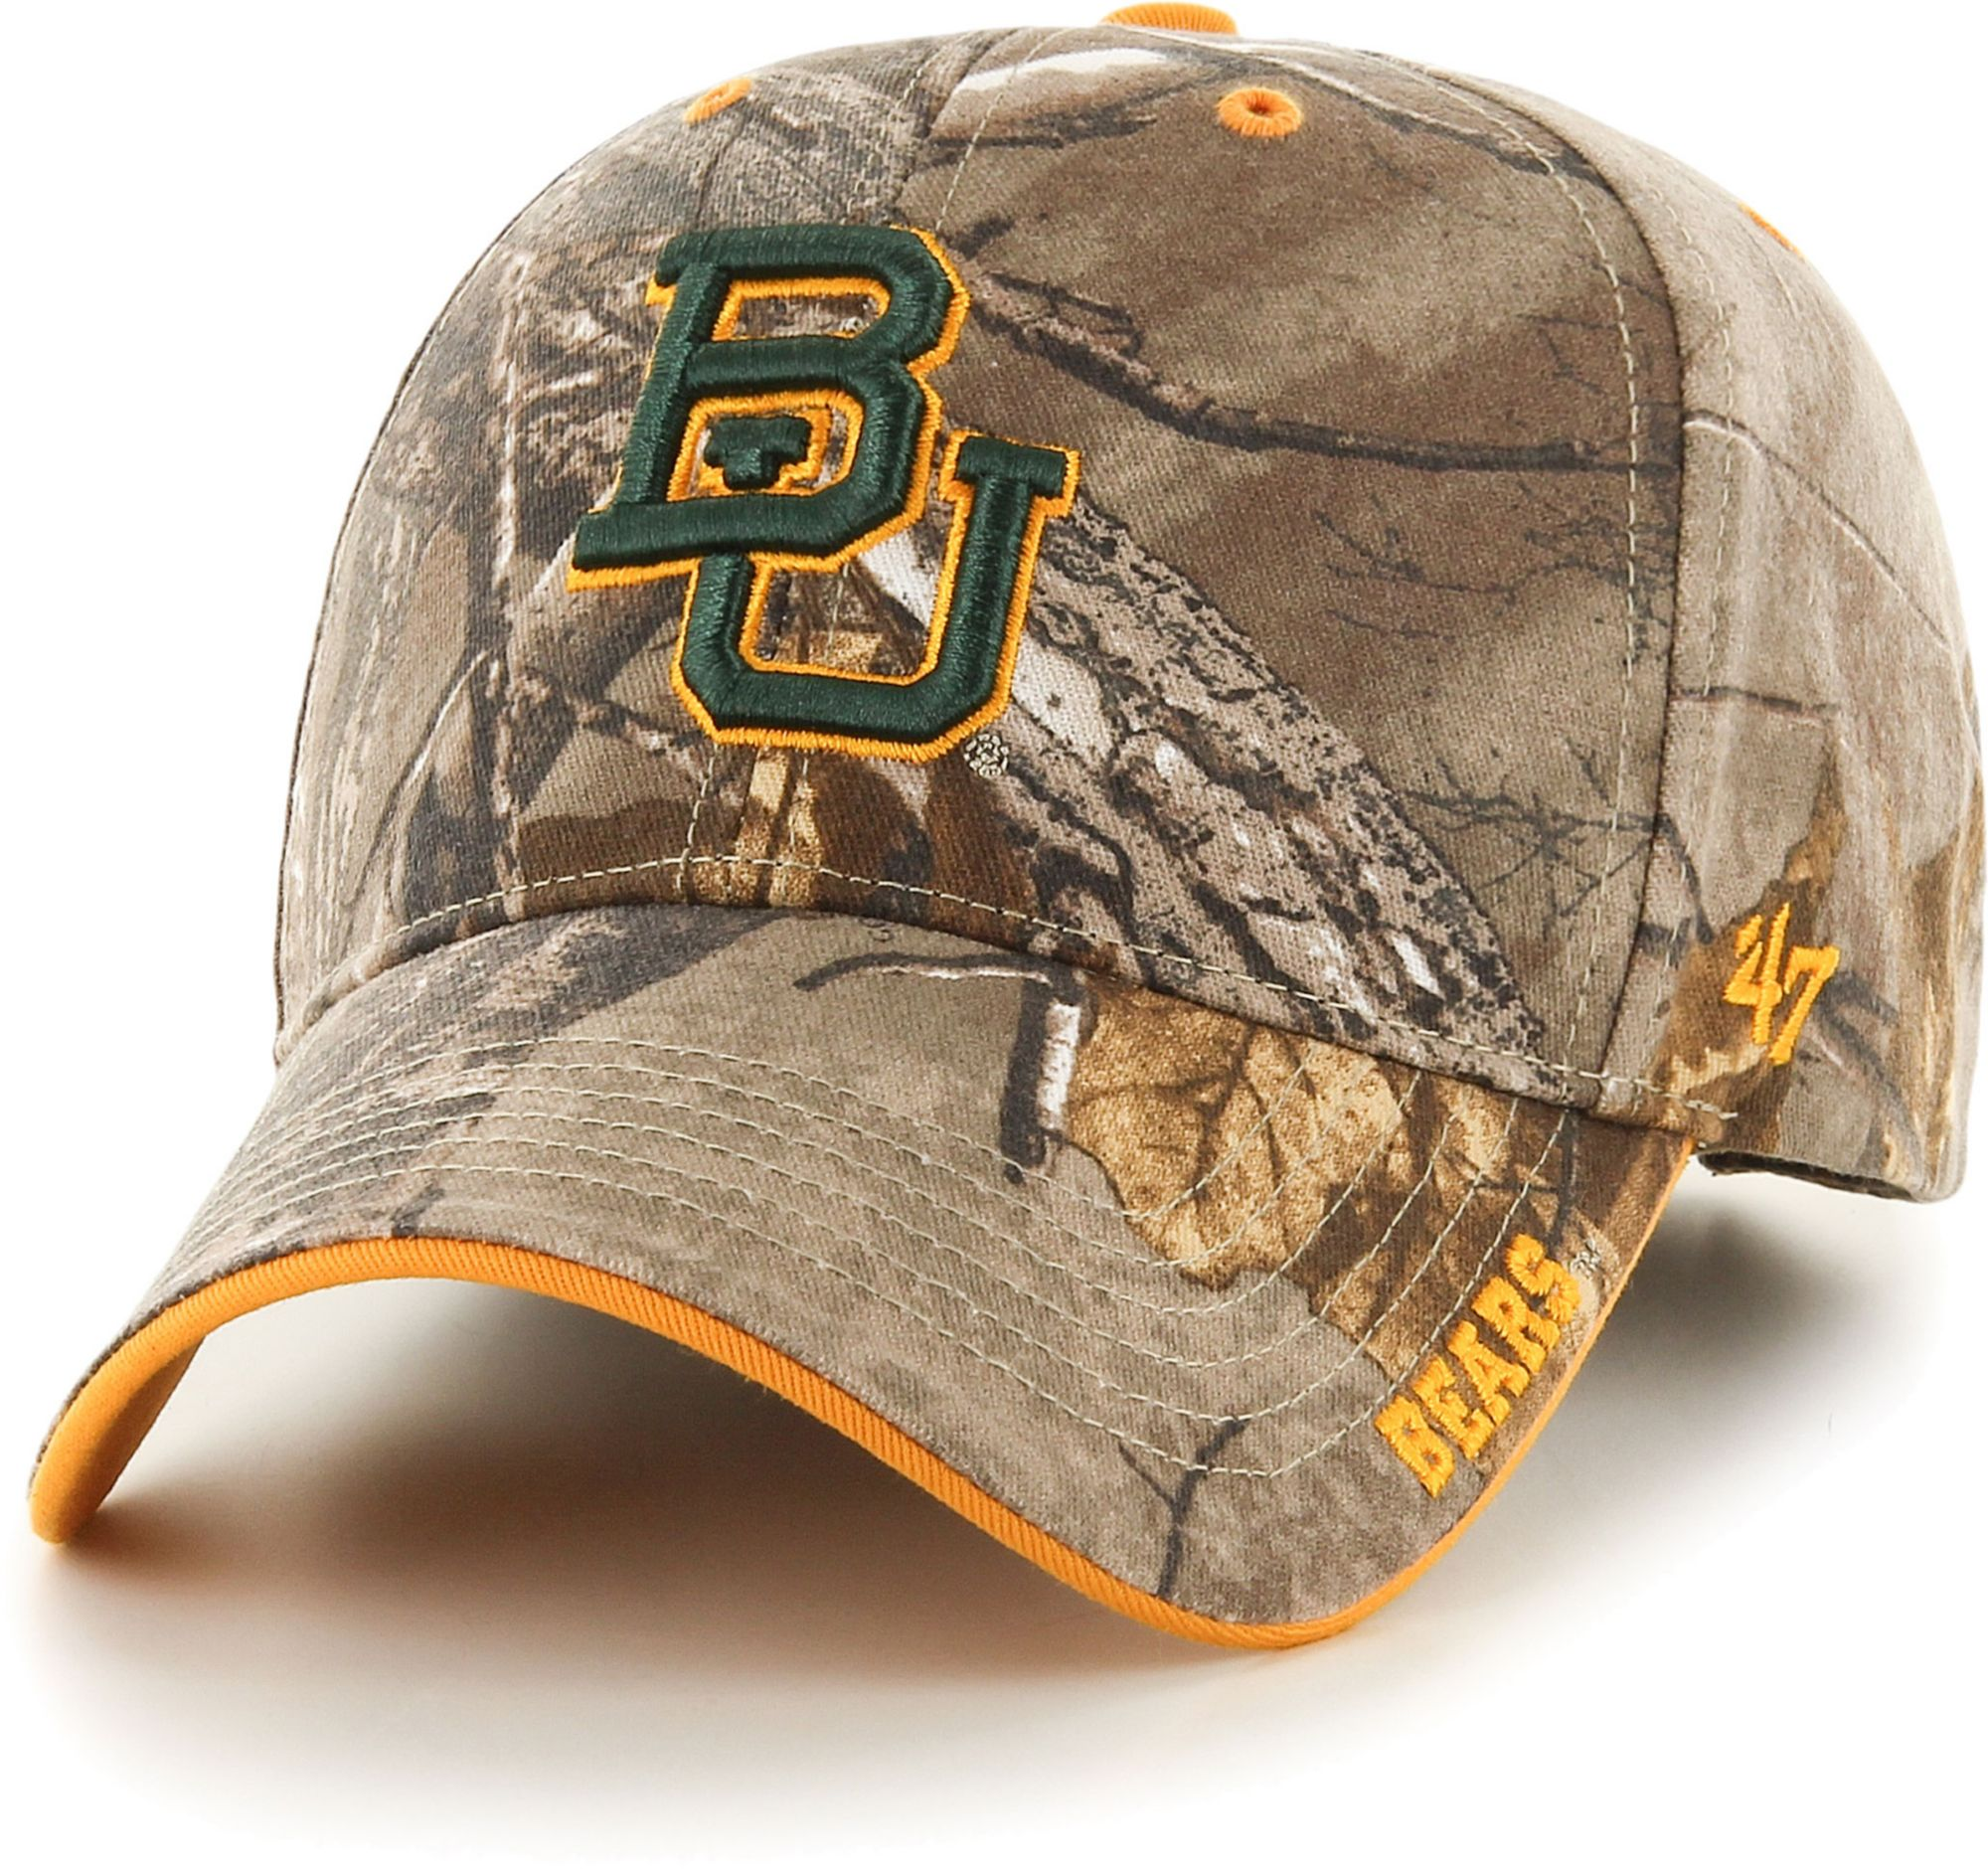 '47 Men's Baylor Camo Realtree Frost MVP Adjustable Hat, Size: One size, Green thumbnail